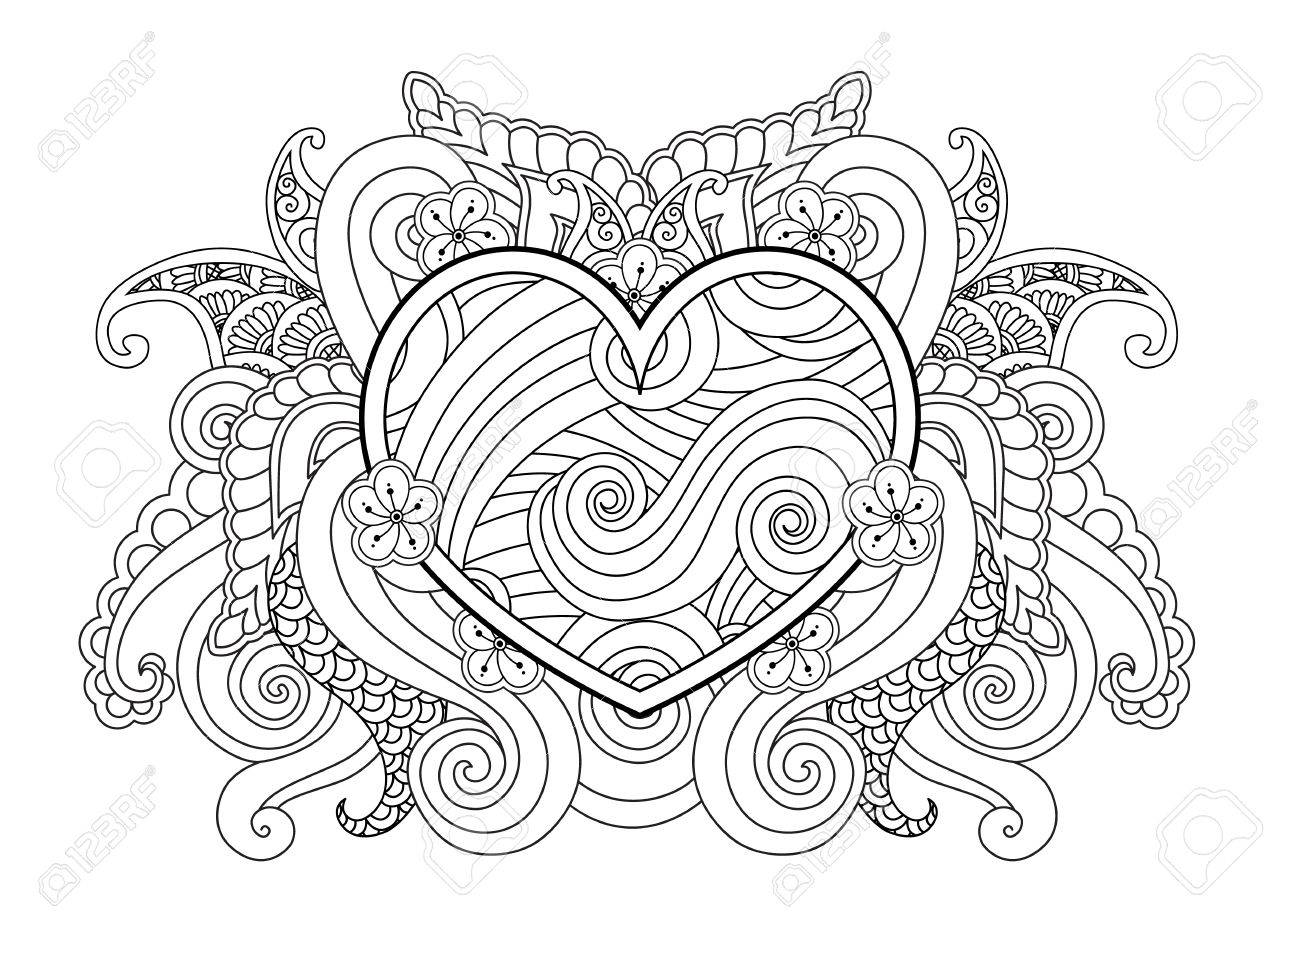 Coloring Page With Heart And Abstract Element Isolated Happy